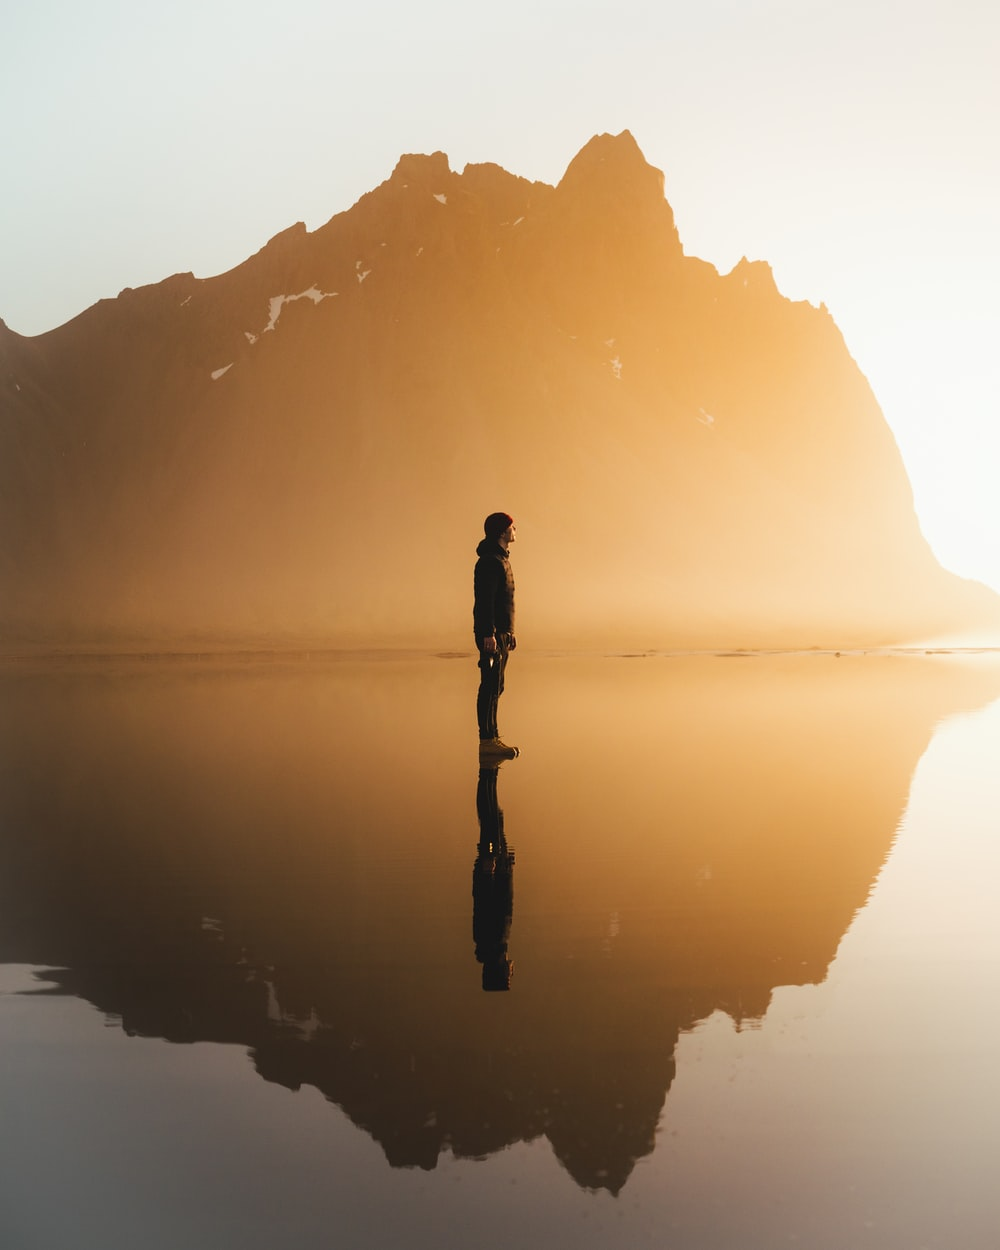 silhouette of woman standing on water during daytime